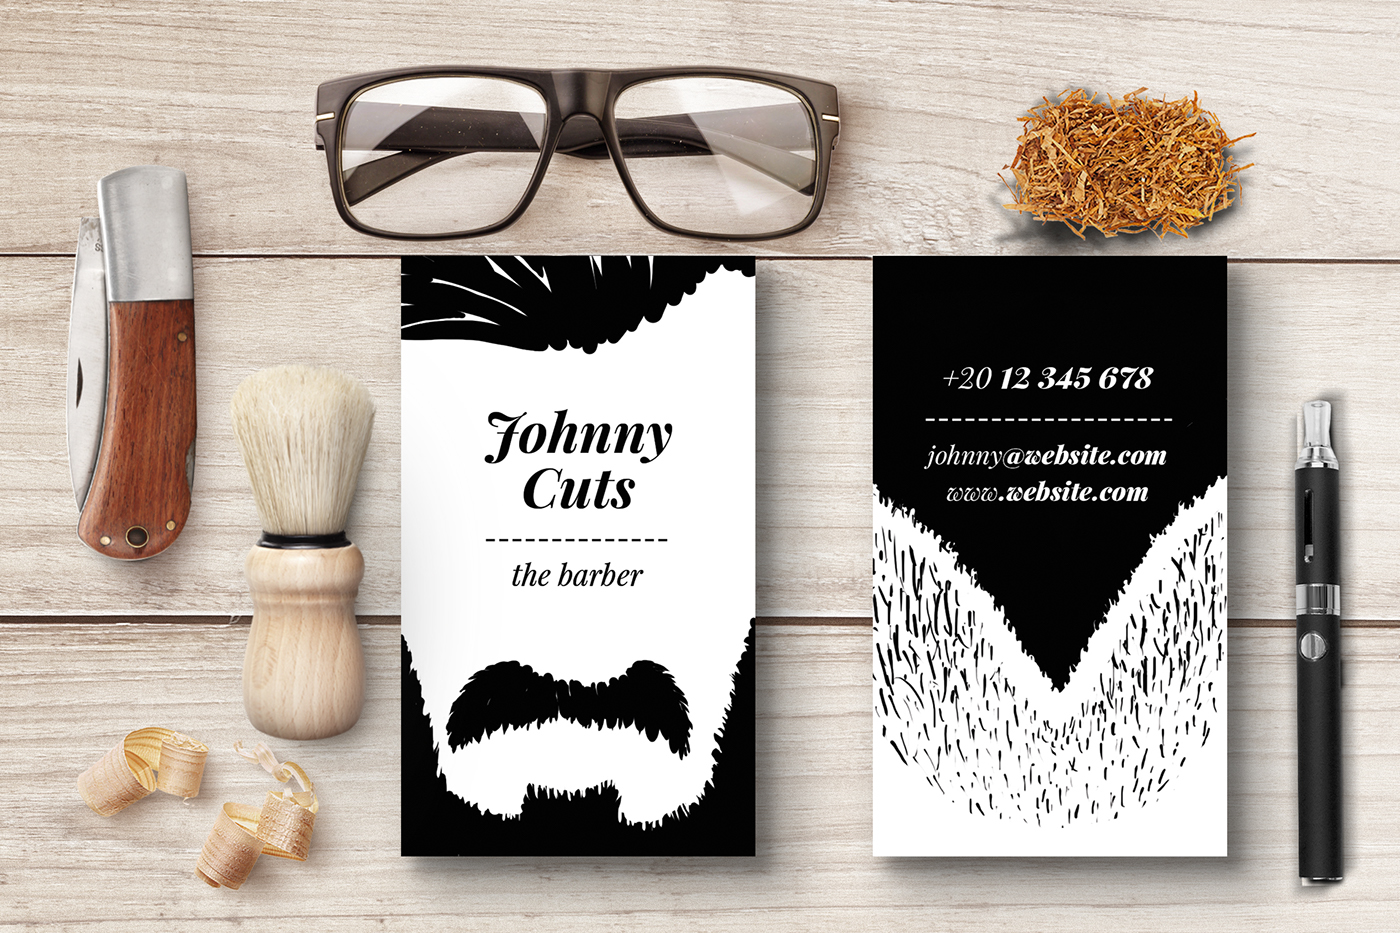 The barber business cards templates on behance choose your hairstyle and your beard then edit your name and youre done customize the business card to match your style you have 25 variations possible fbccfo Image collections